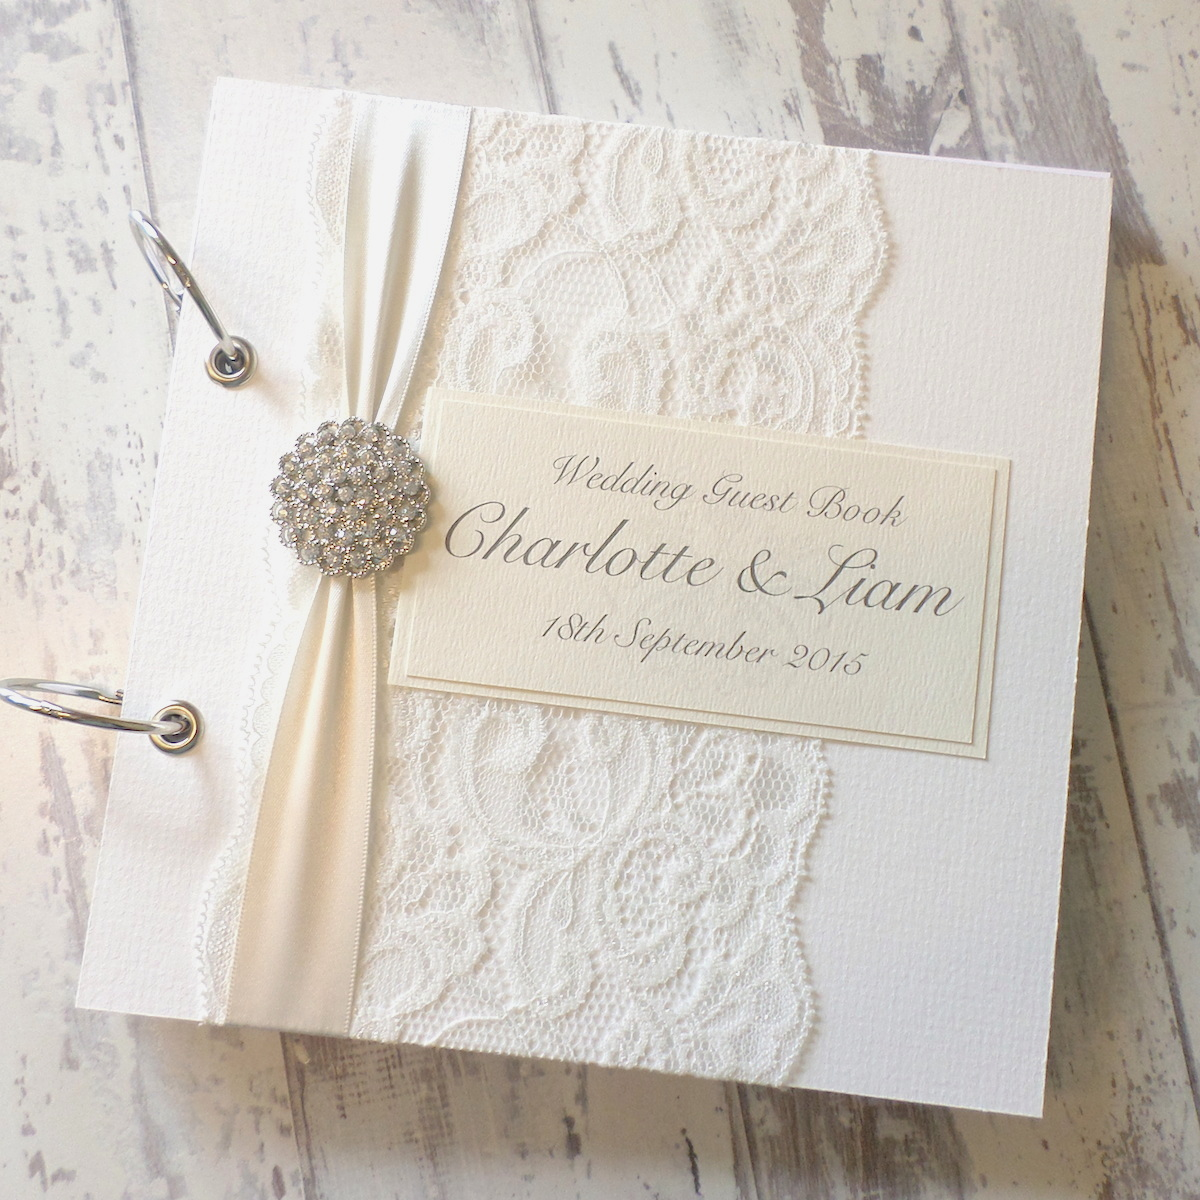 Personalised wedding guest books cards wedding ideas bloguk personalised wedding guest books cards wedding ideas bloguk inspiration wedding blog wedding help planninggreat wedding style tips colour monicamarmolfo Choice Image